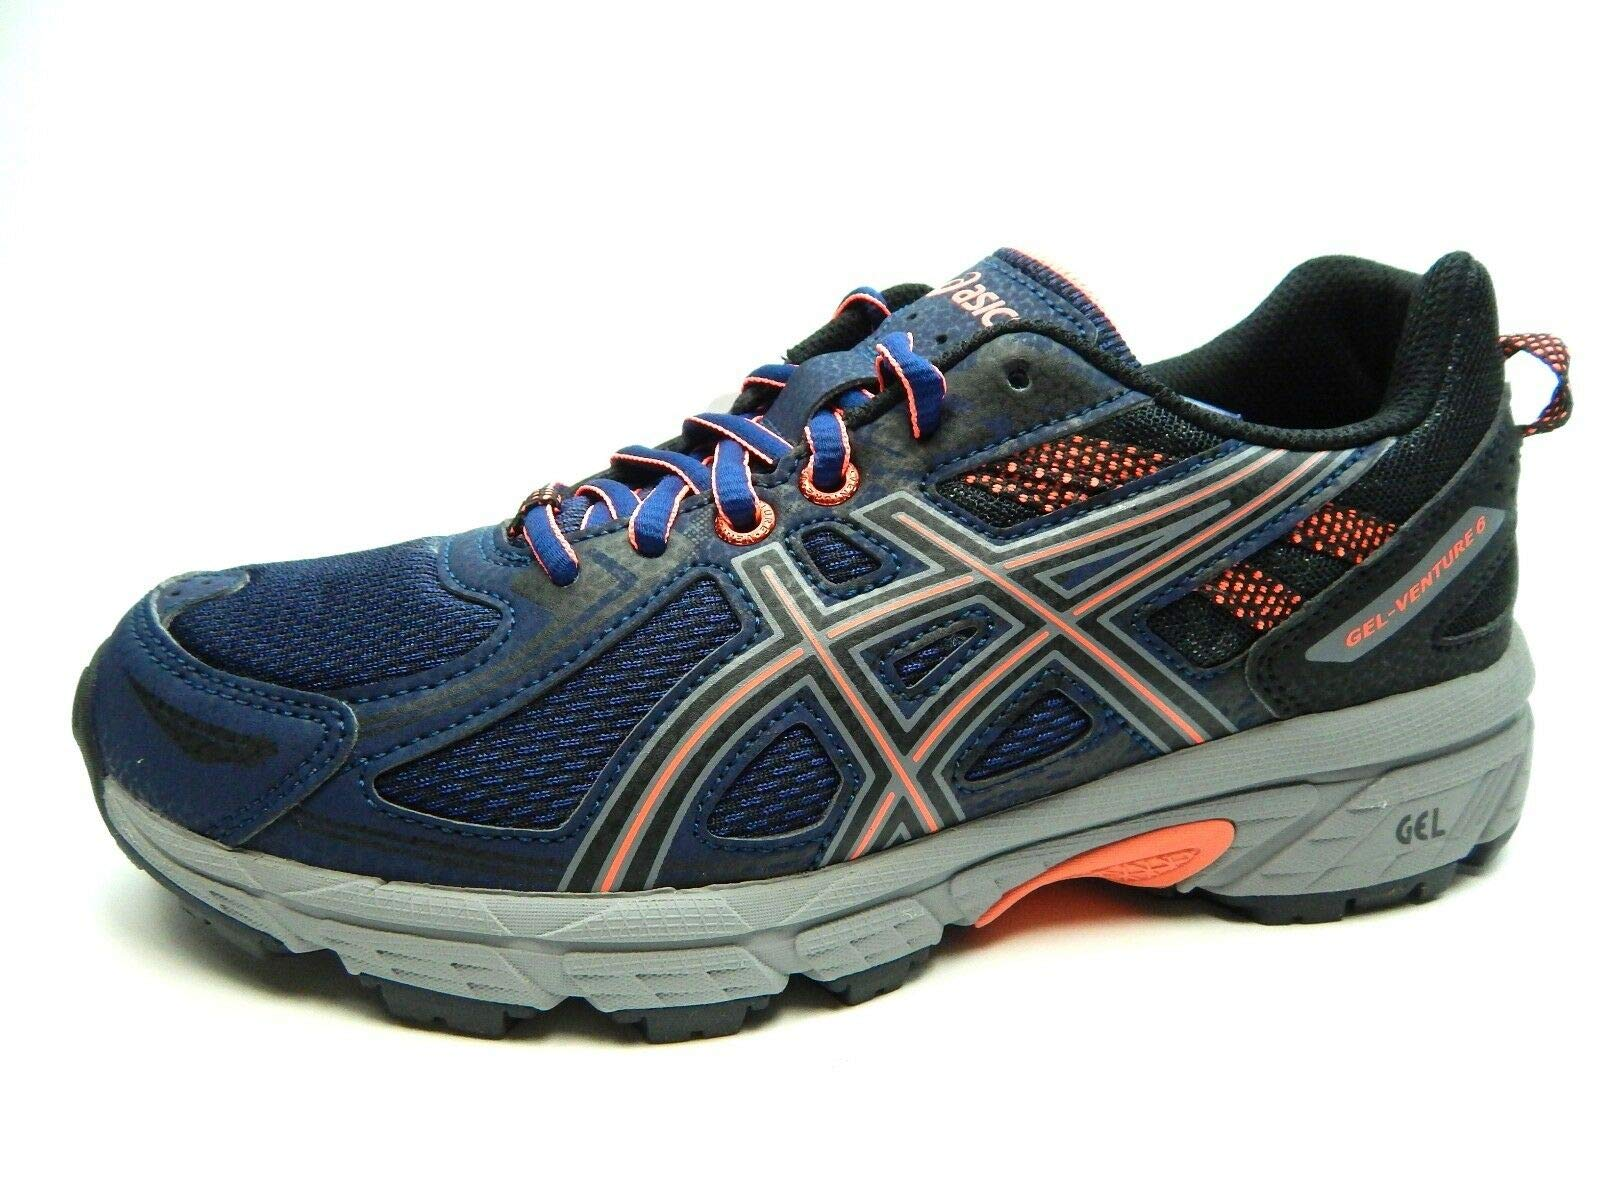 ASICS Women's Gel-Venture 6 Running-Shoes, Indigo Blue/Black/Coral, 12.5 by ASICS